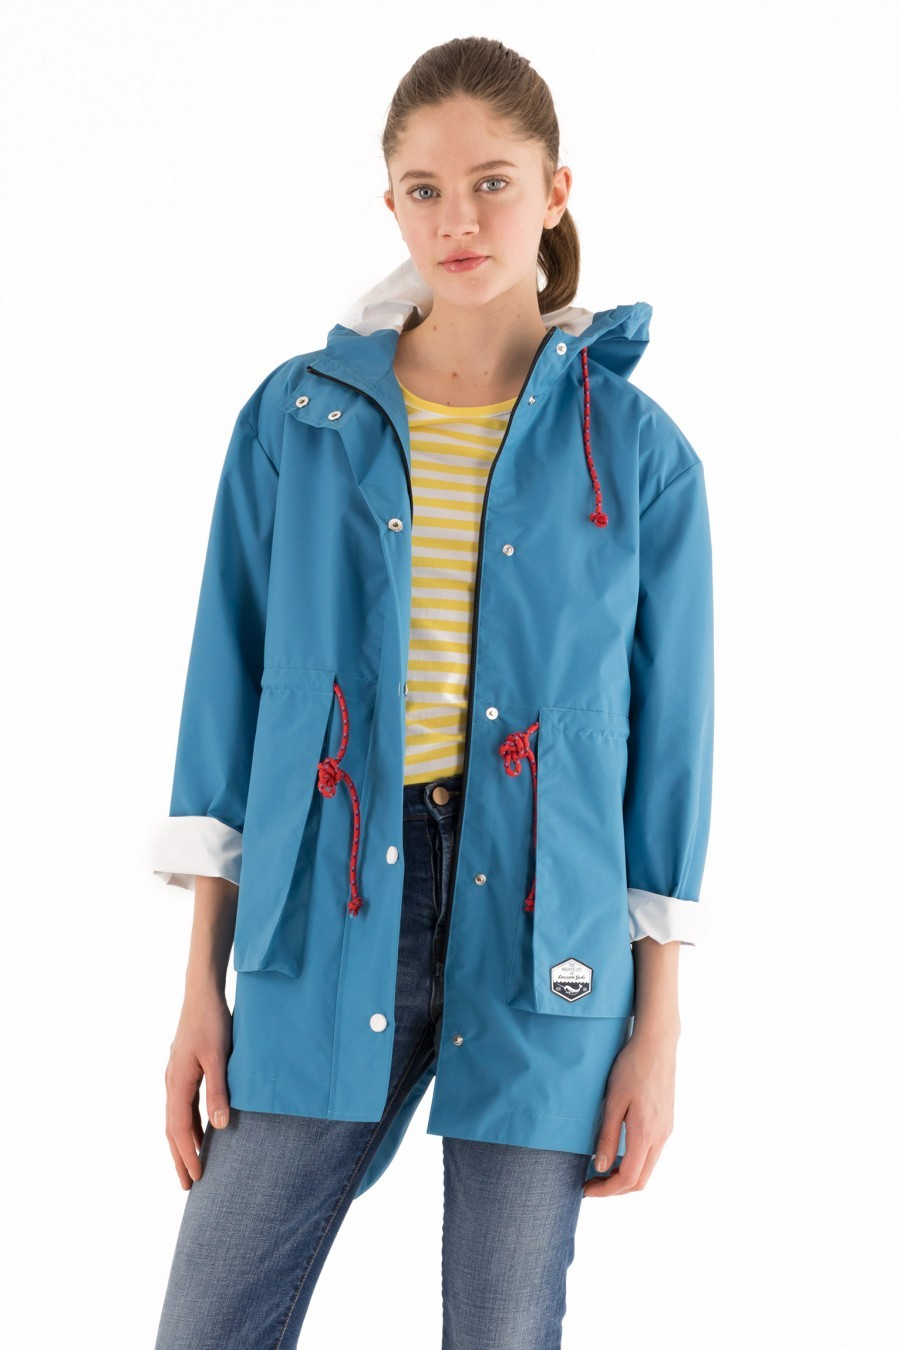 rain jacket light blue Lazzari